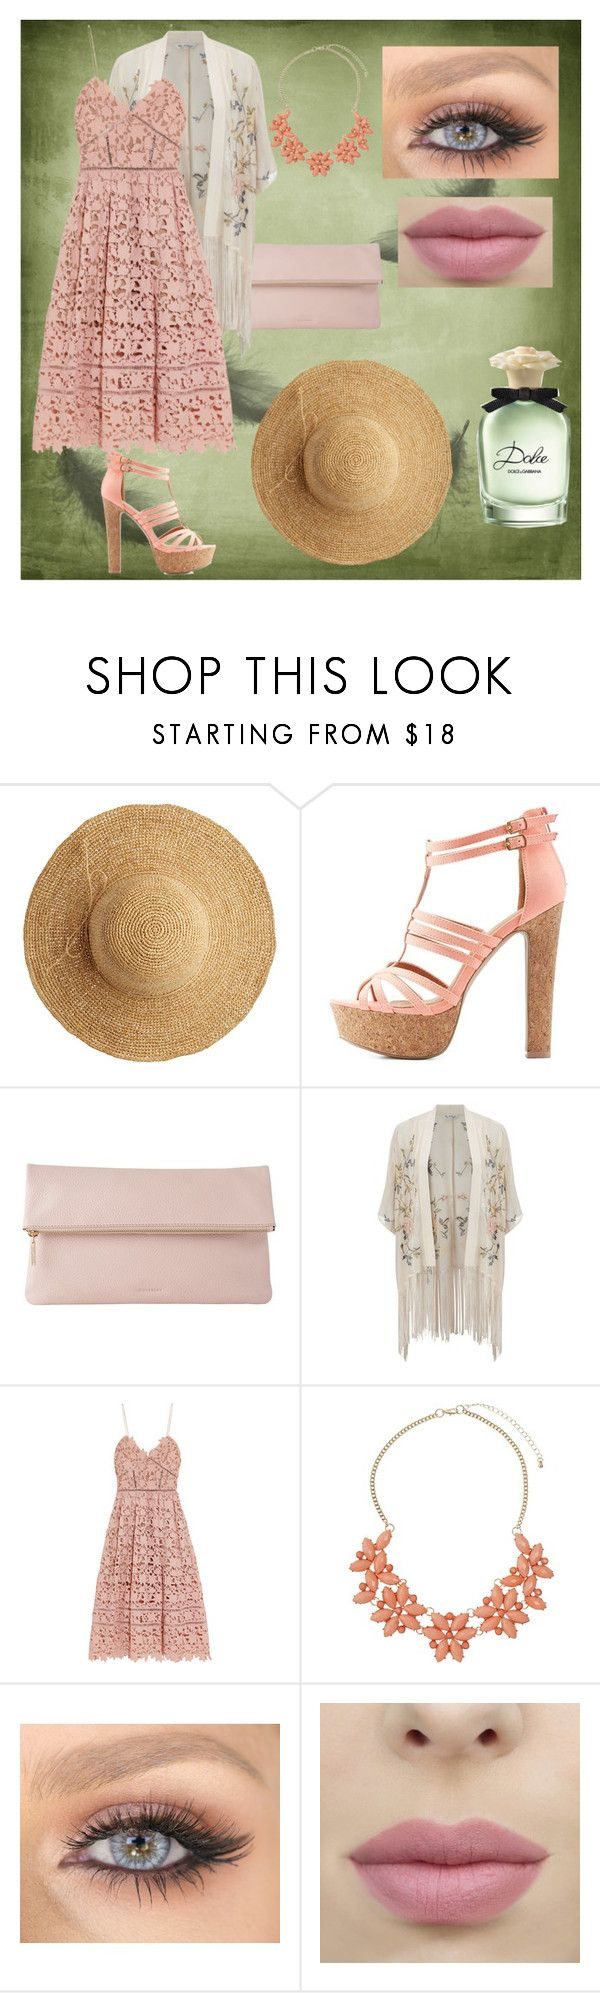 """Dolce"" by klaunela on Polyvore featuring moda, Flora Bella, Charlotte Russe, Whistles, Miss Selfridge, self-portrait, Dorothy Perkins y Dolce&Gabbana"